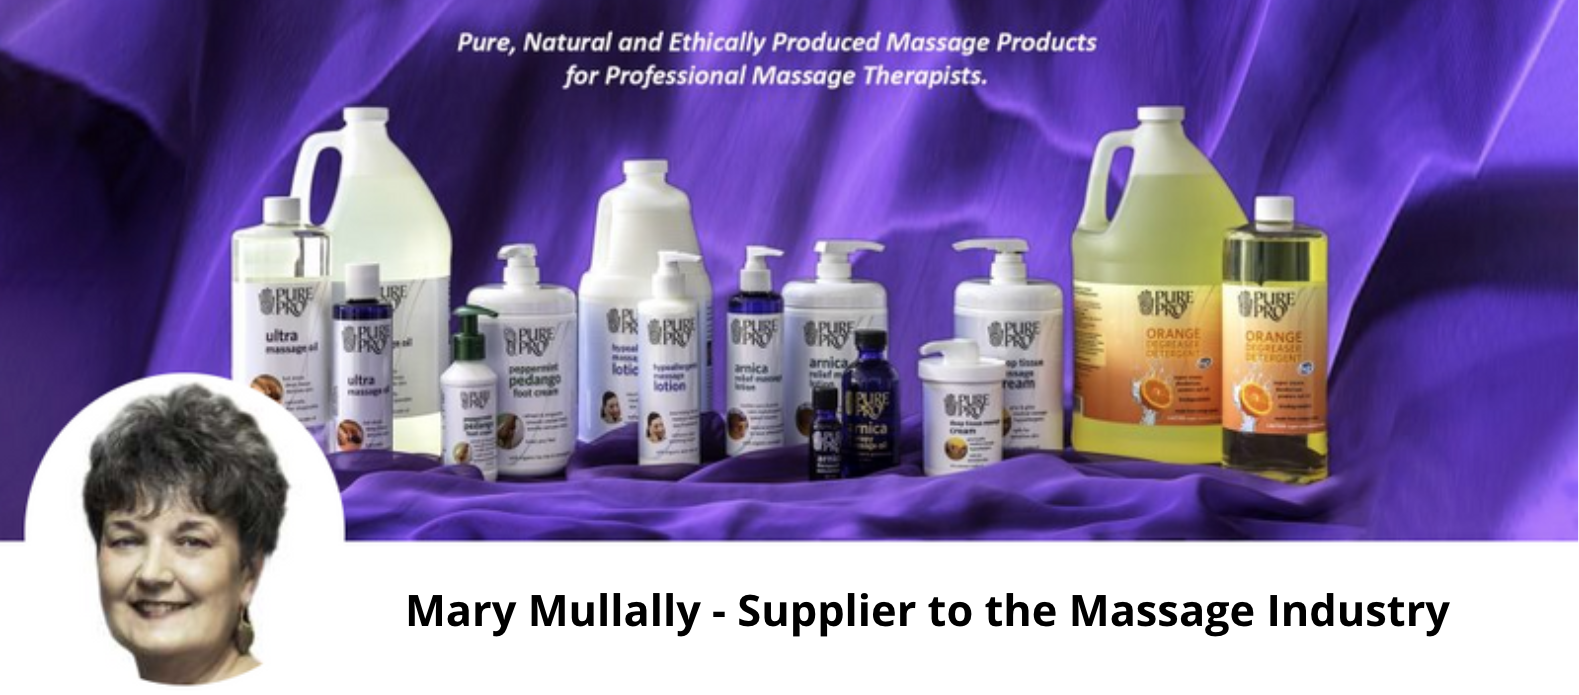 Mary Mullally - Supplier to the Massage Industry